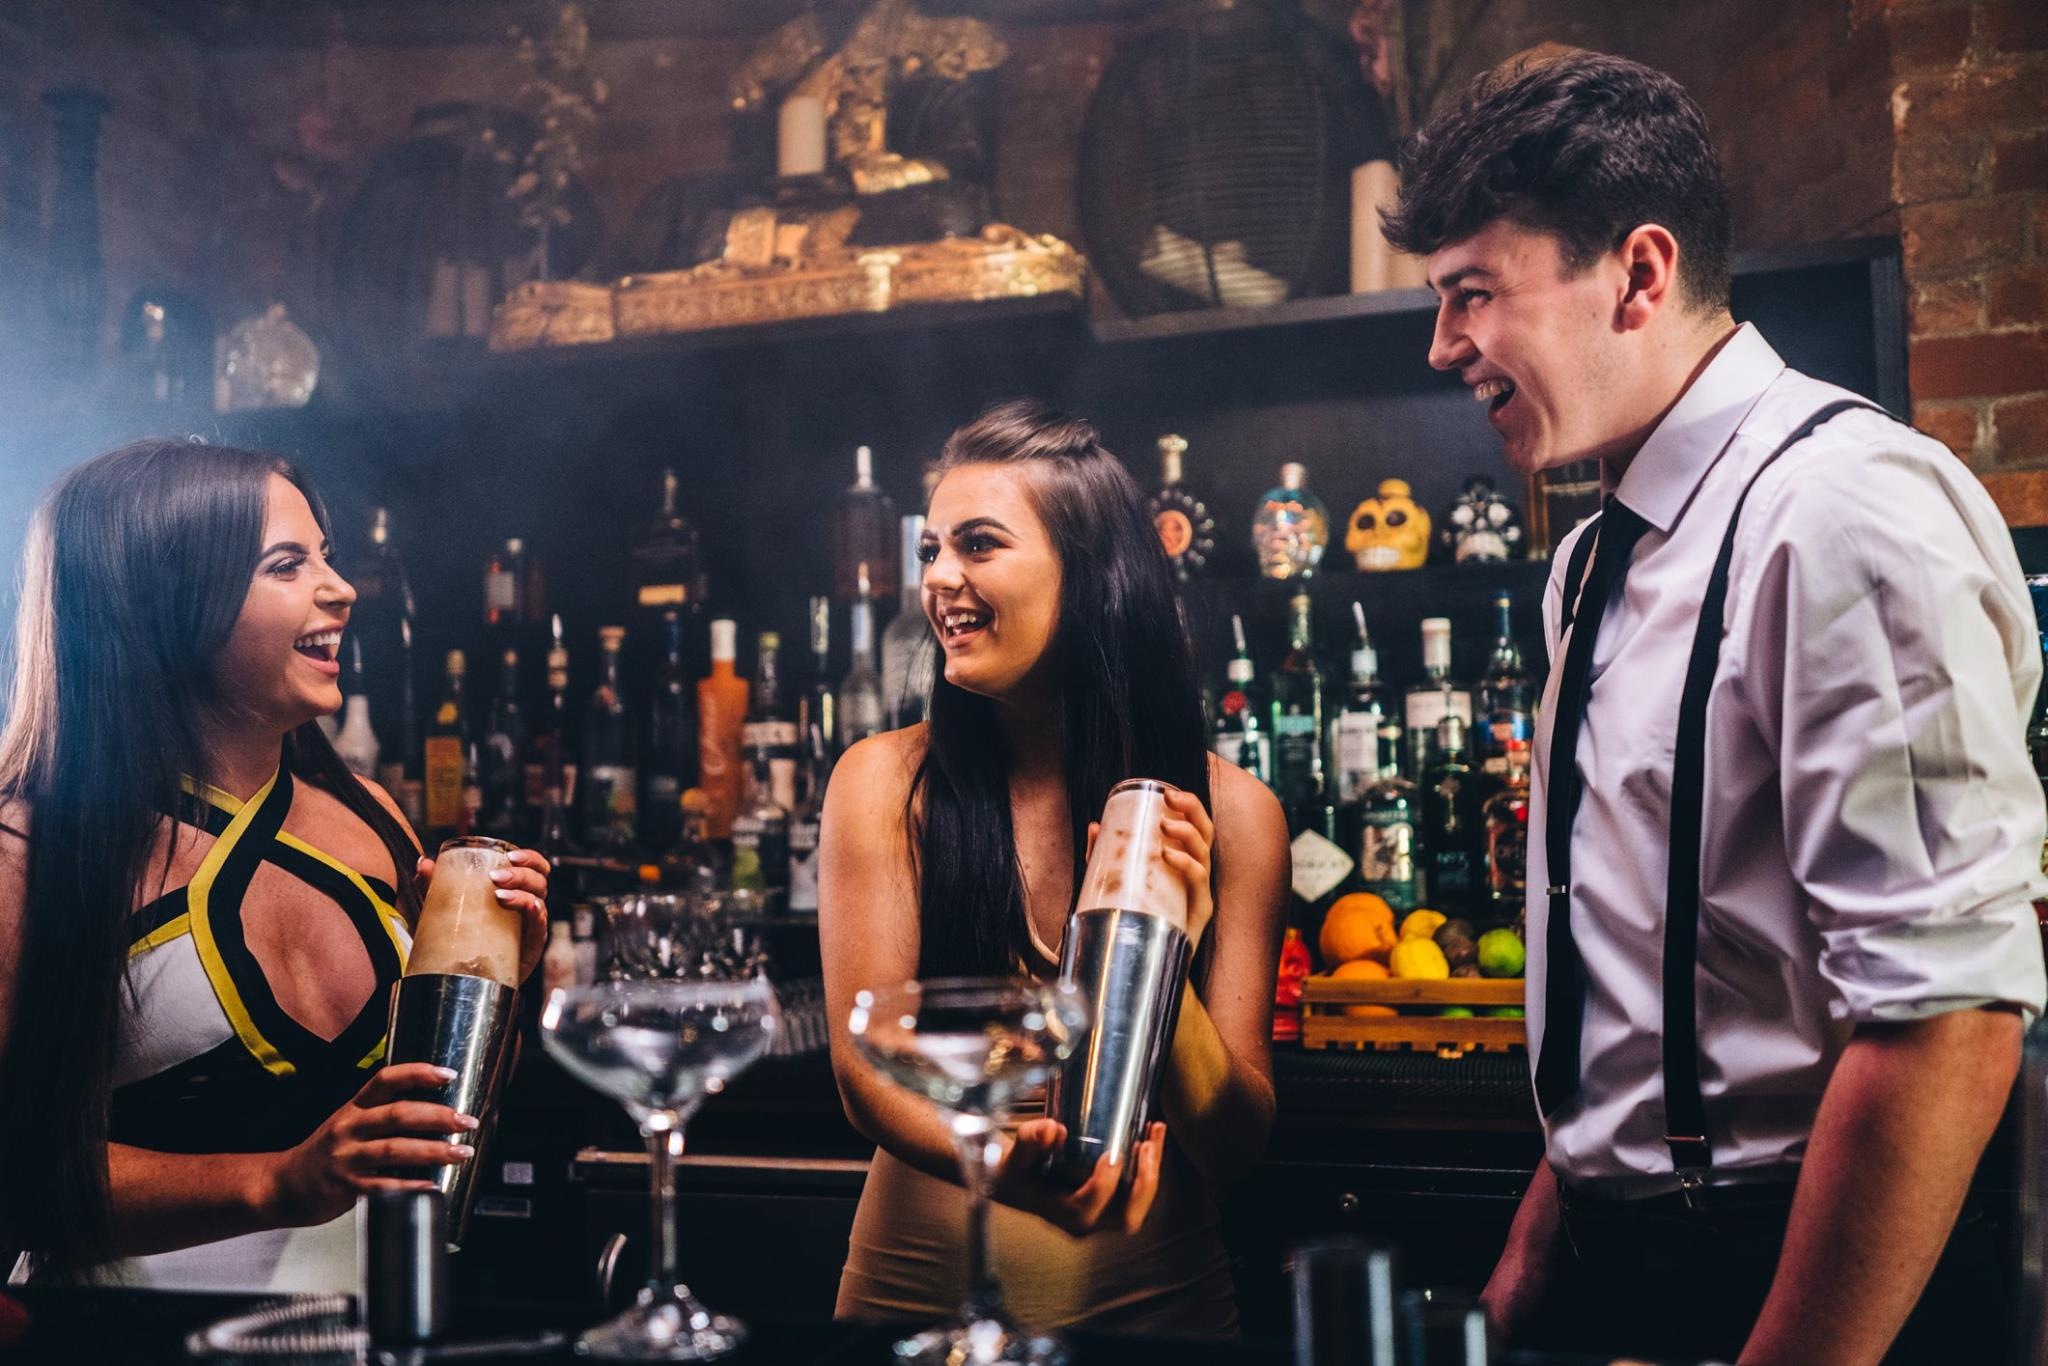 The Very Best Newcastle Hookup Bars and Clubs | Hookupads